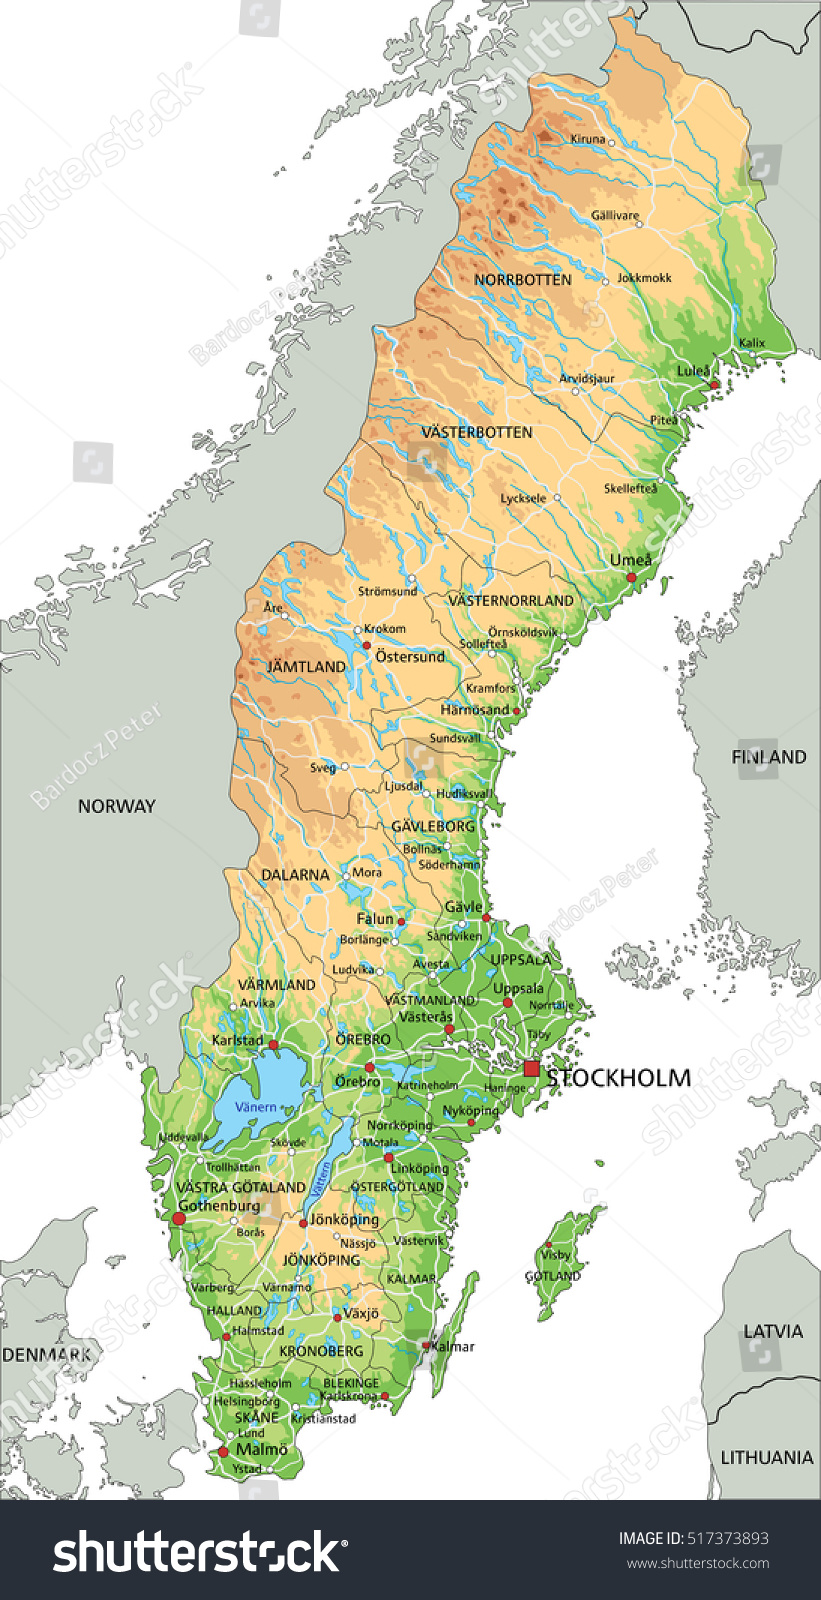 High Detailed Sweden Physical Map Labeling Stock Vector - Sweden map physical